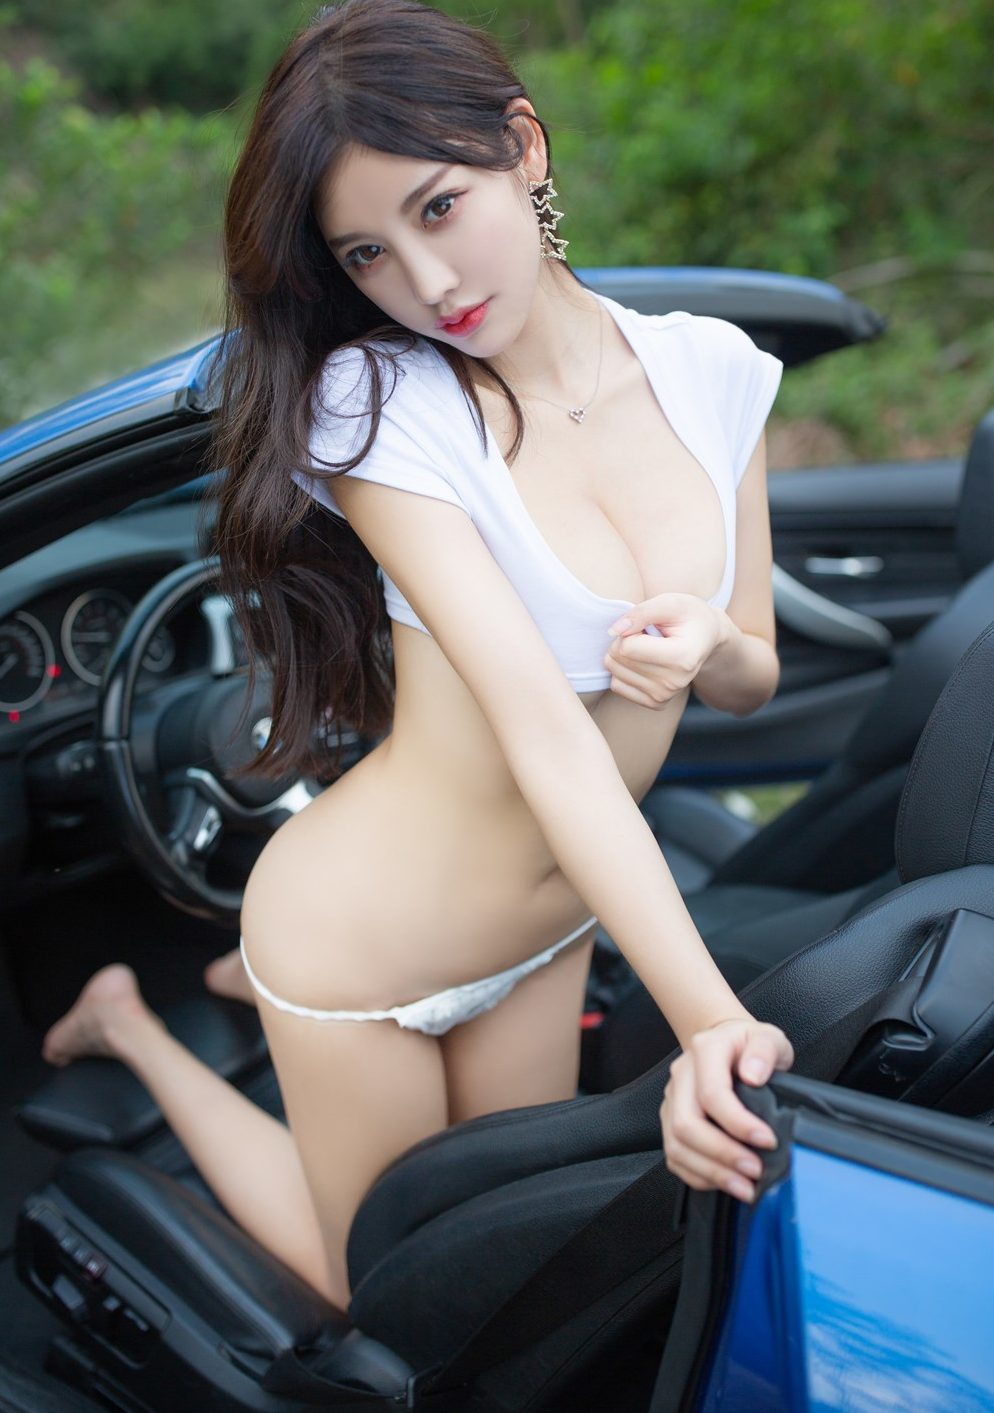 yang chen chen wild asian girl car position